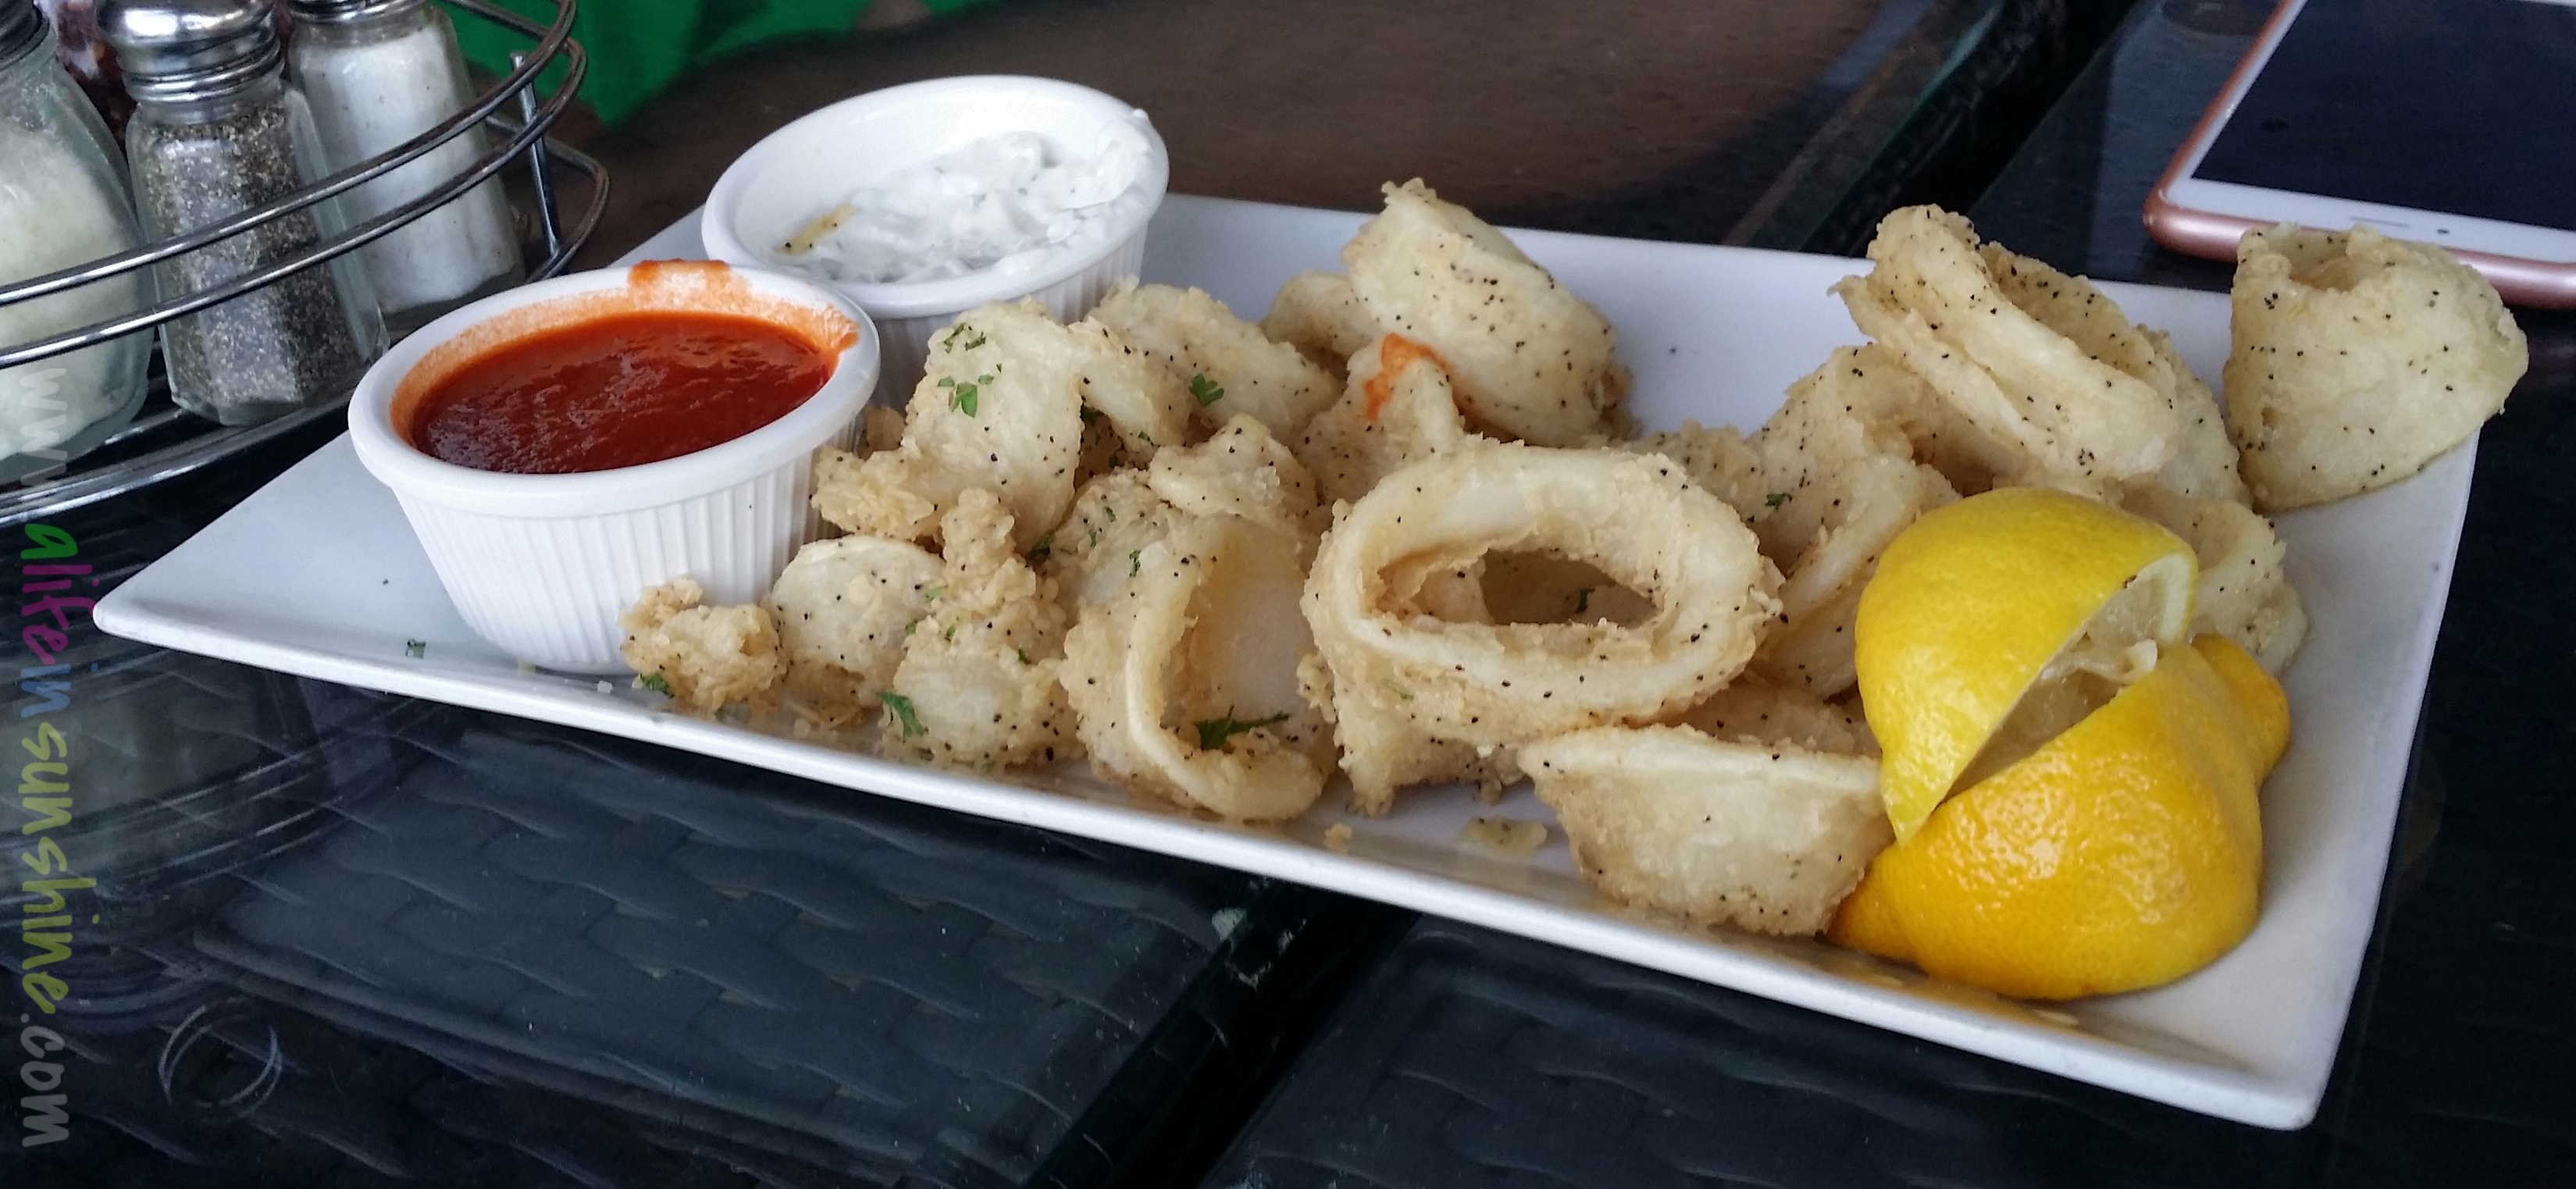 my boyfriend and i shared this calamari appetizer  the sauces were both great and there was actually a lot of calamari  i u0027ve experienced more breading than     the hammocks  amici u0027s trattoria italiana  u2013 a life in sunshine  rh   alifeinsunshine